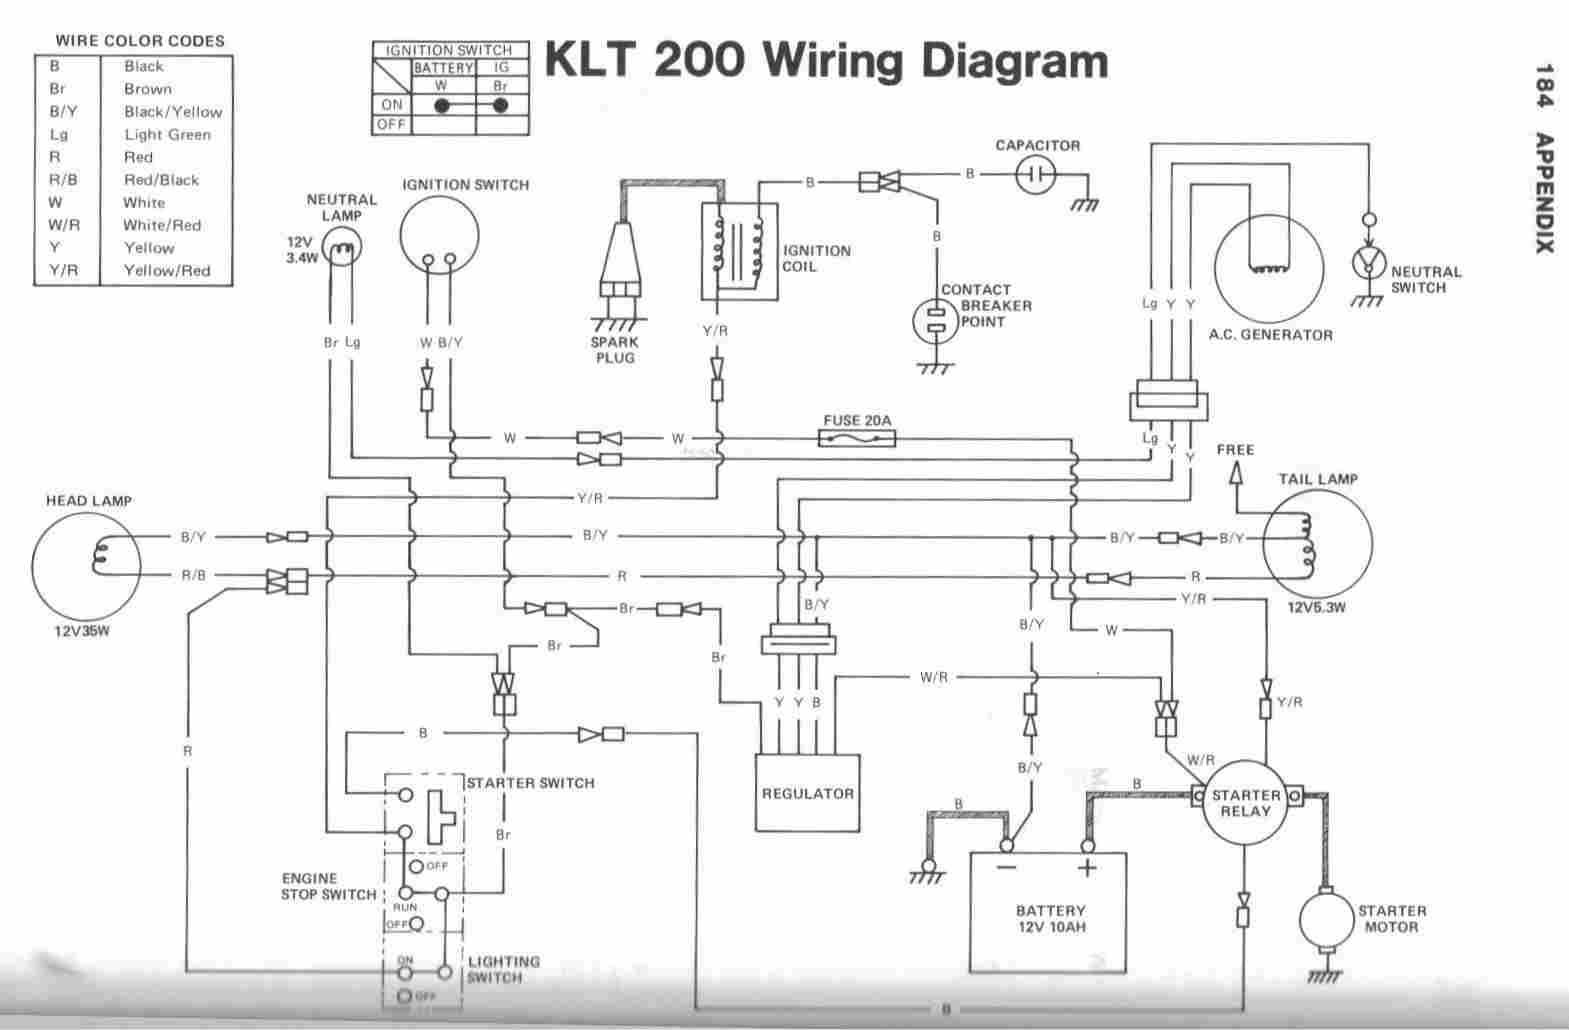 Residential electrical wiring diagrams pdf easy routing cool residential electrical wiring diagrams pdf easy routing asfbconference2016 Gallery